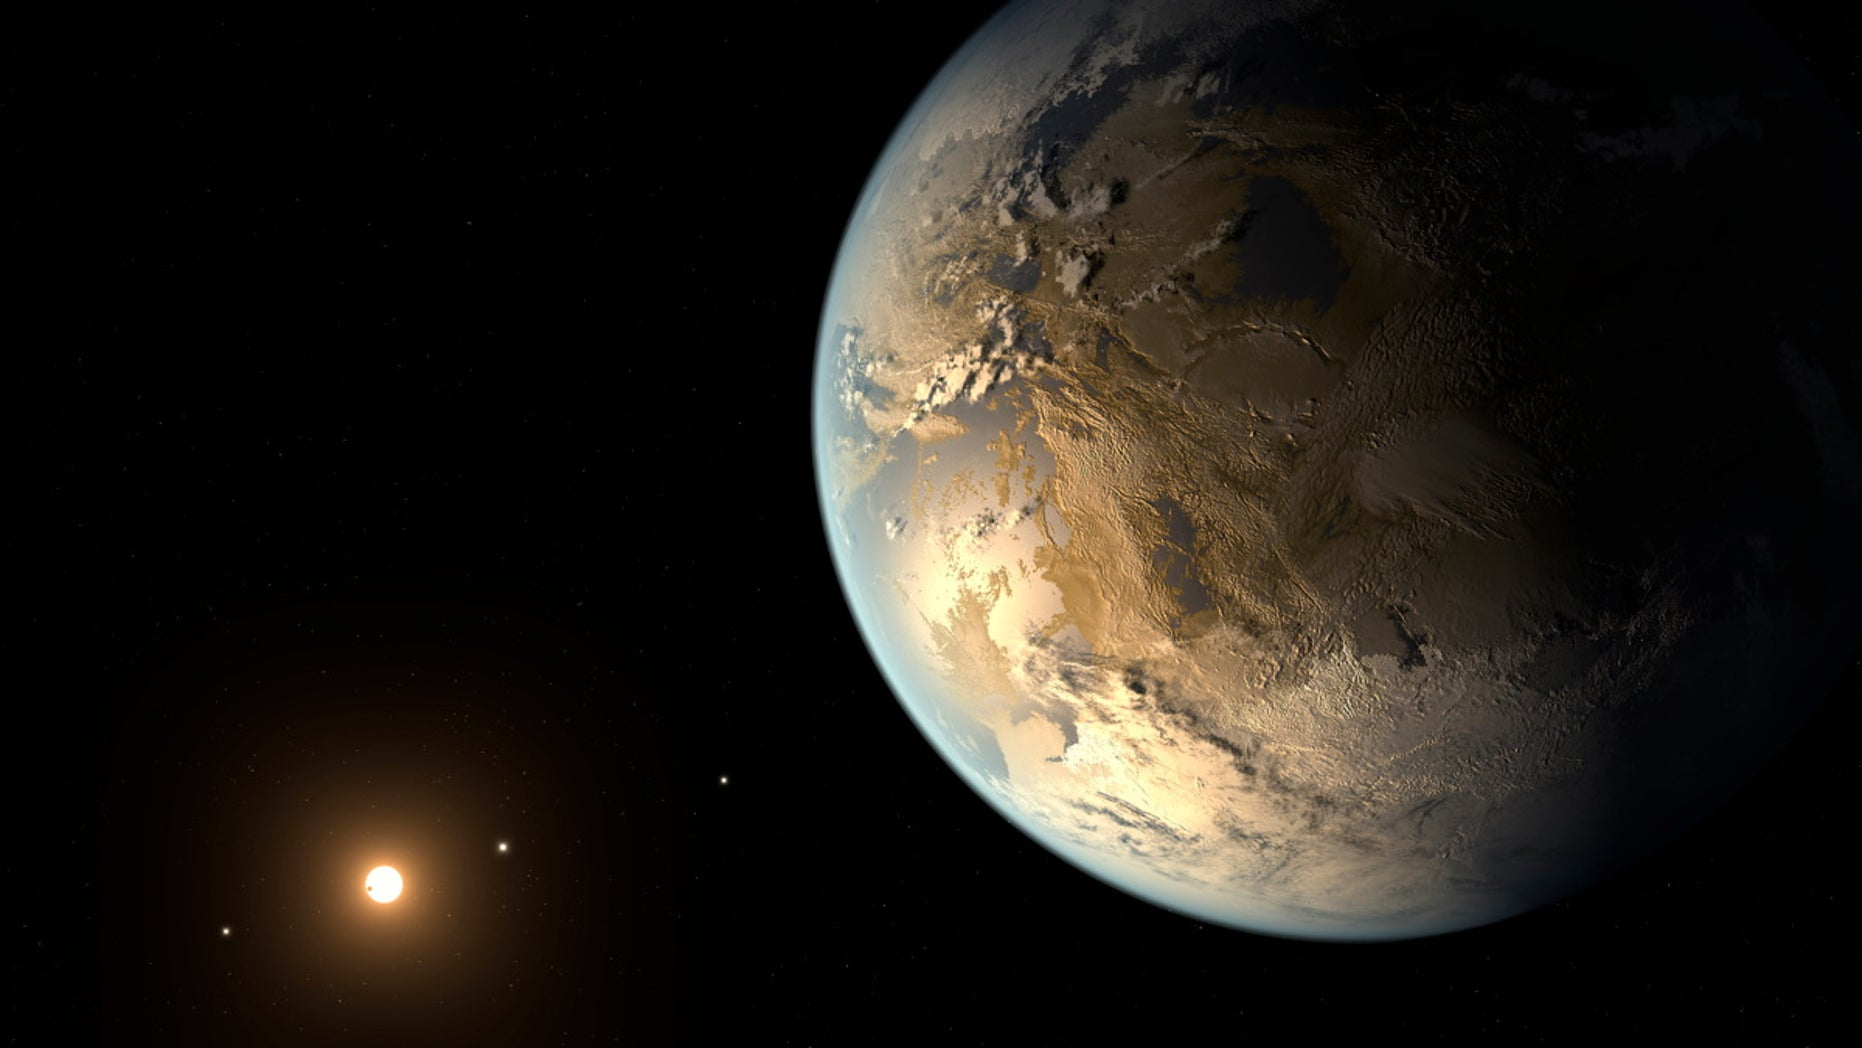 Artist's illustration of the alien planet Kepler-186f, which orbits in the habitable zone of a red dwarf star.